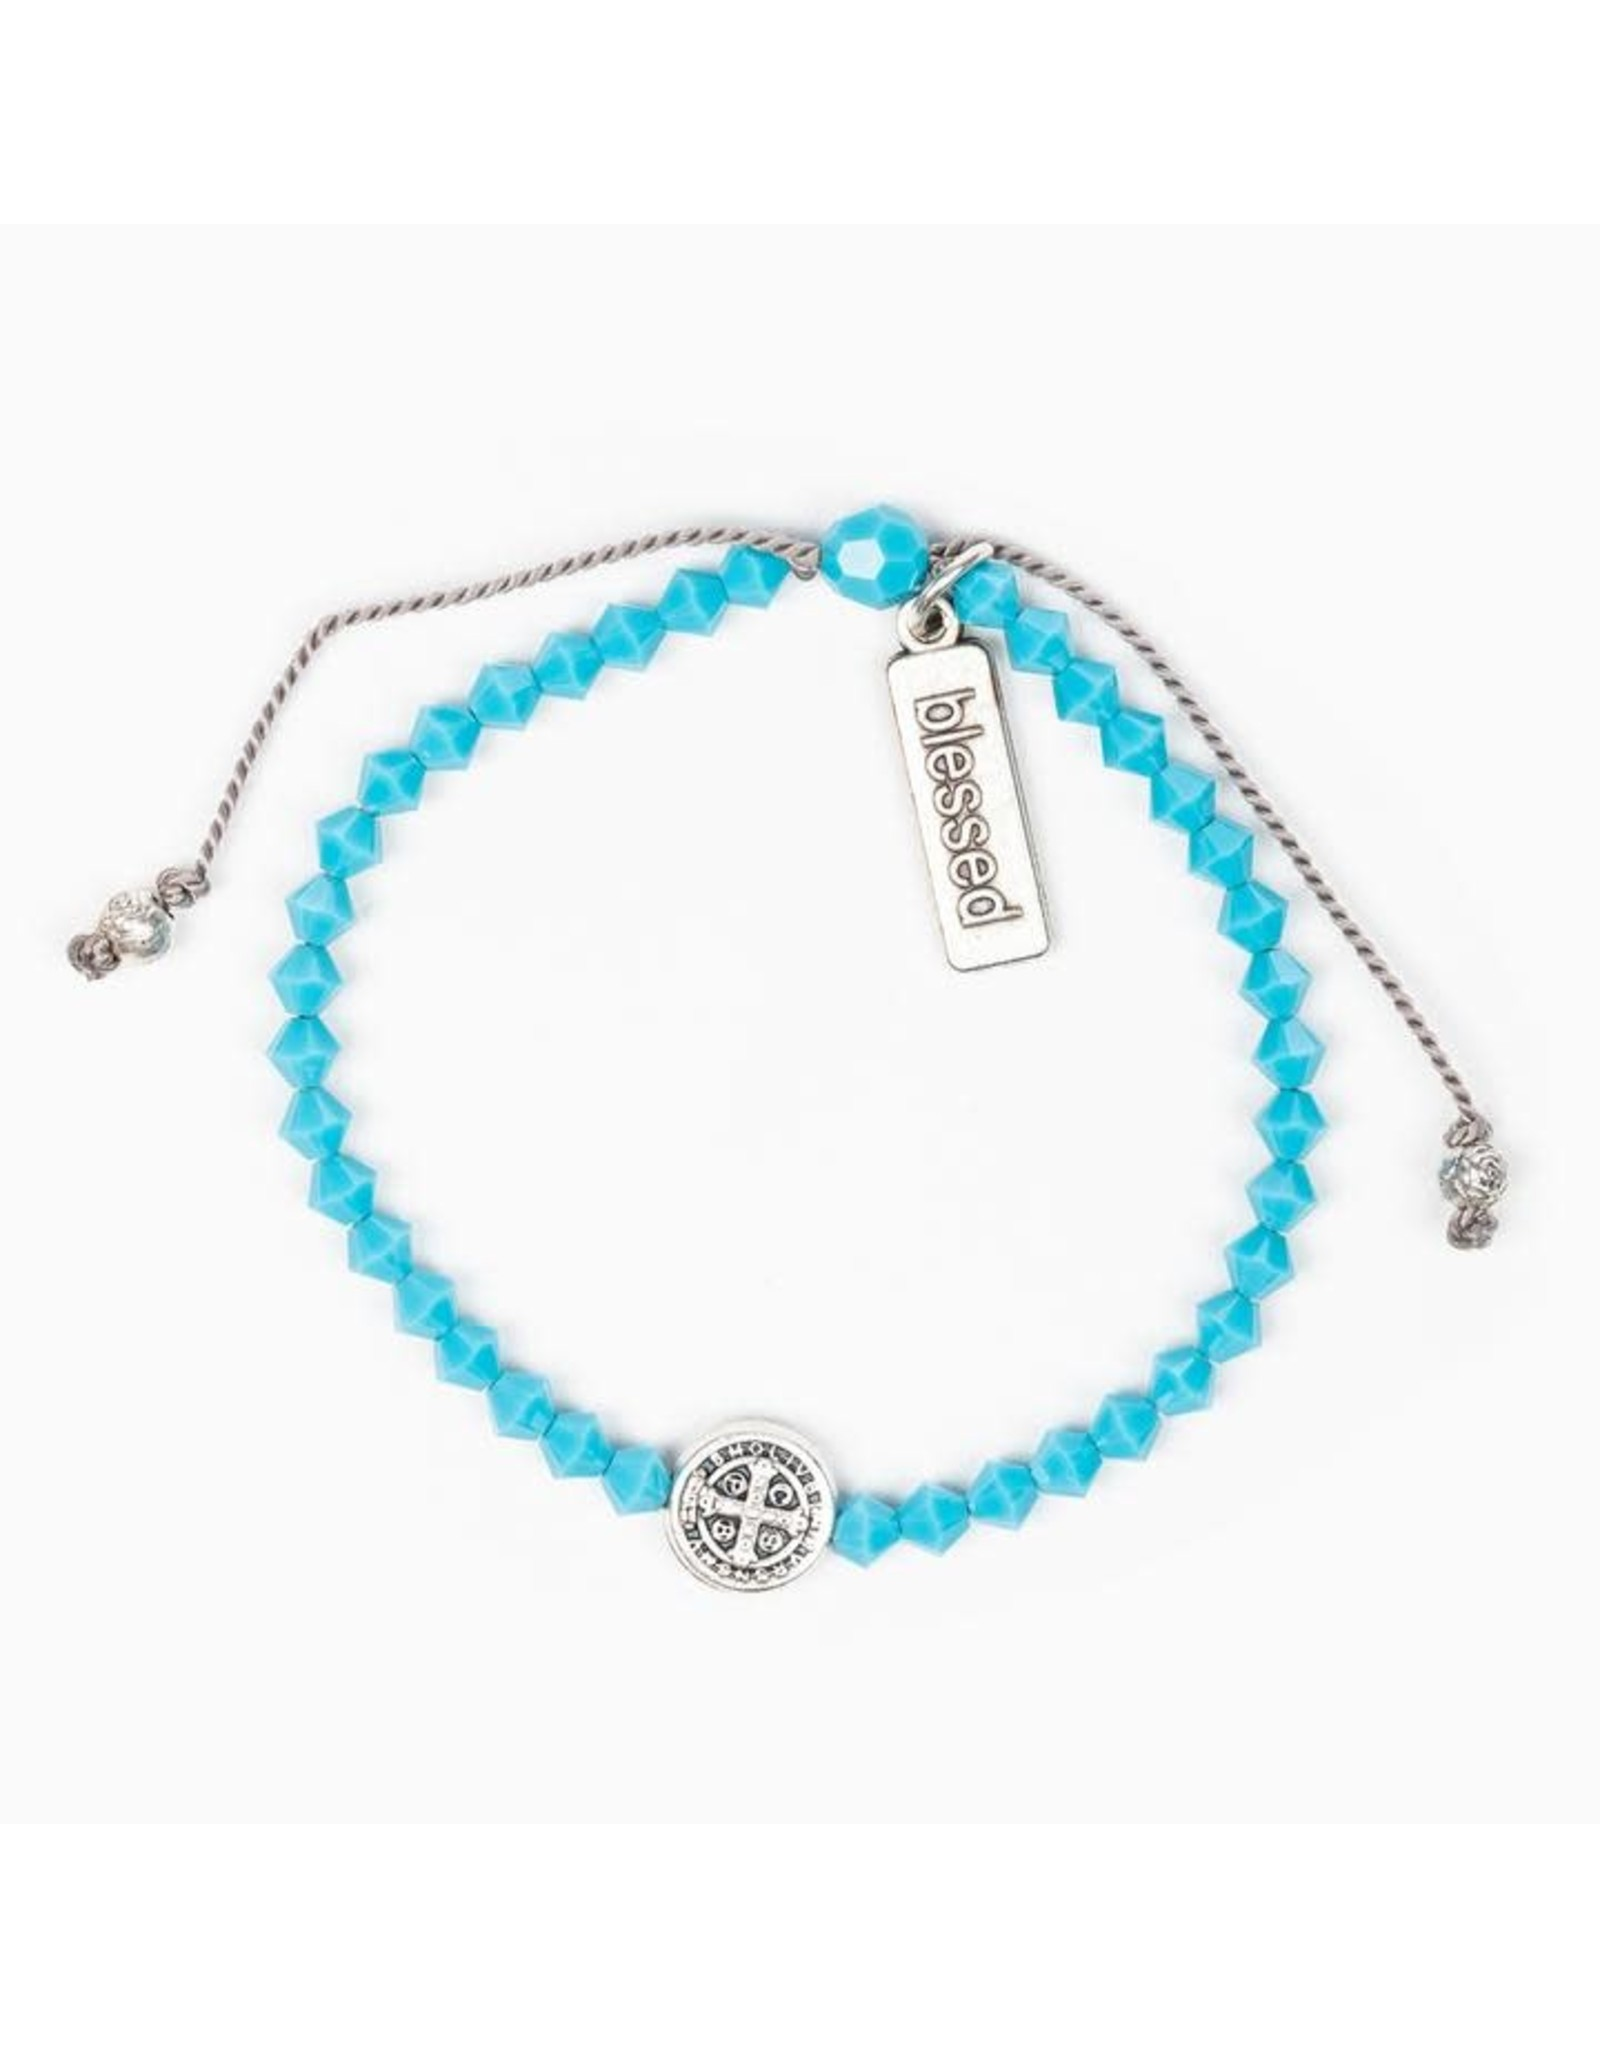 MSMH Birthday Blessing Bracelet- December Silver